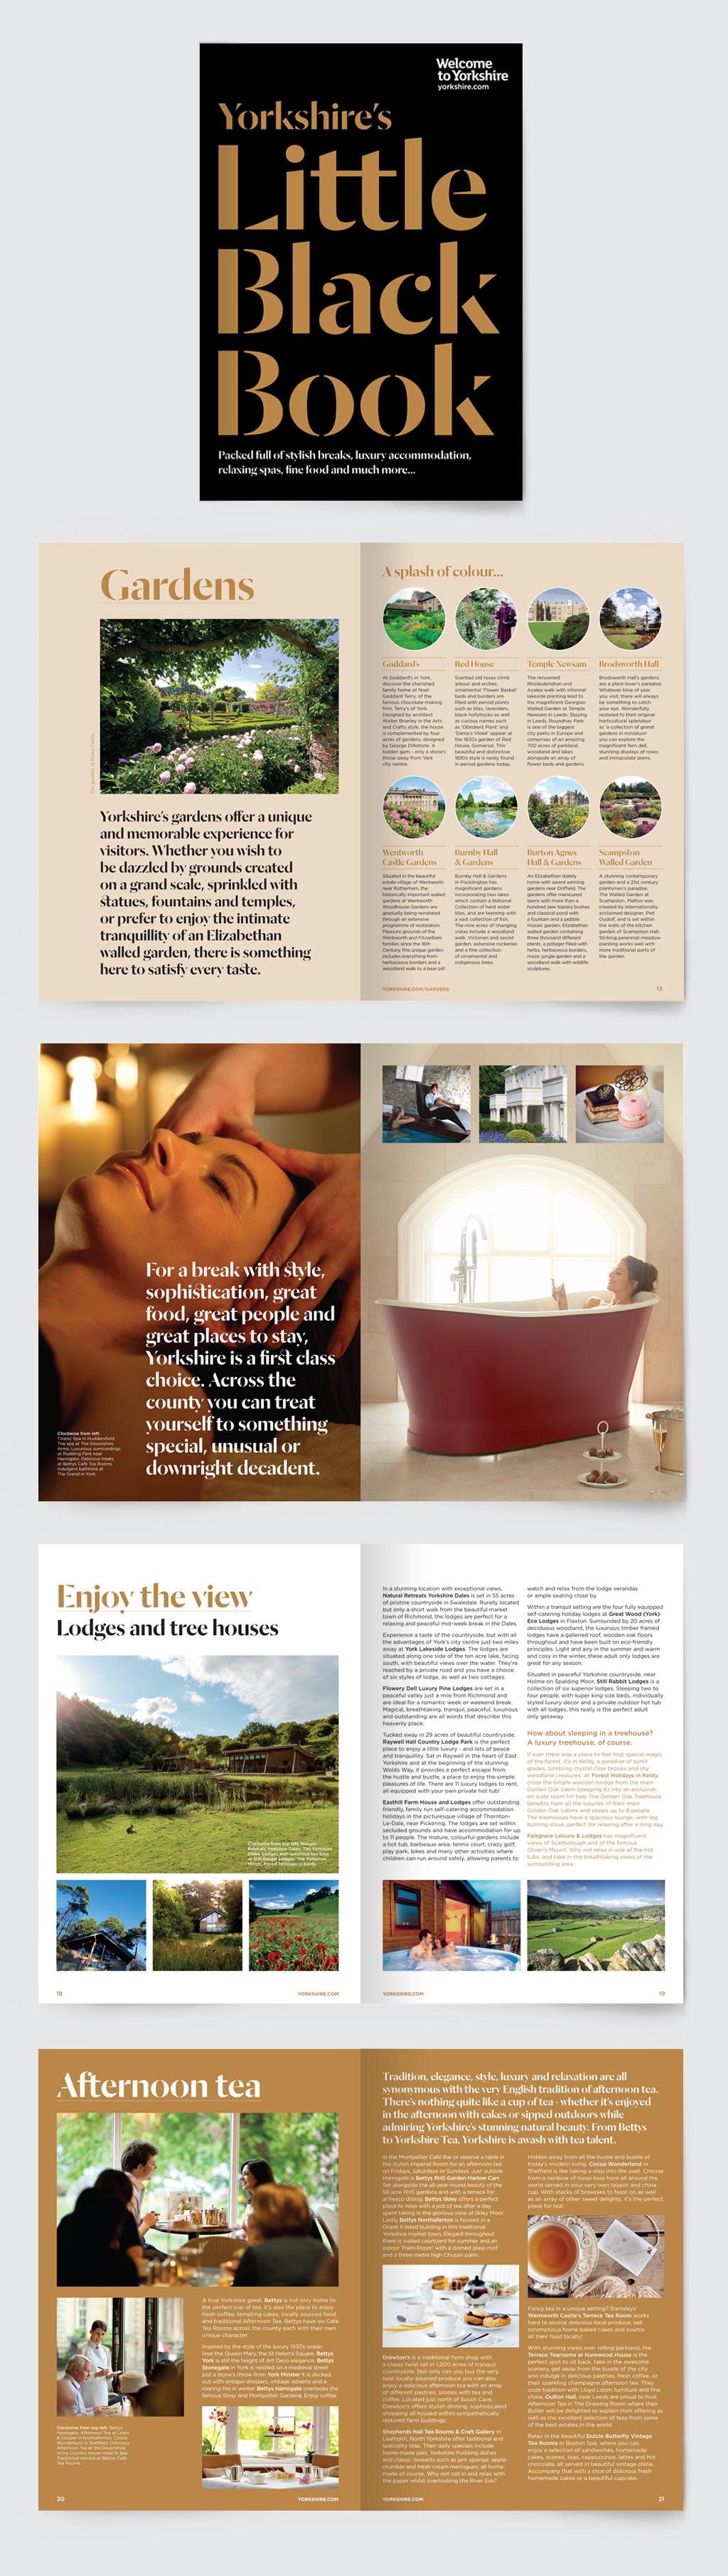 LBB pages 1024